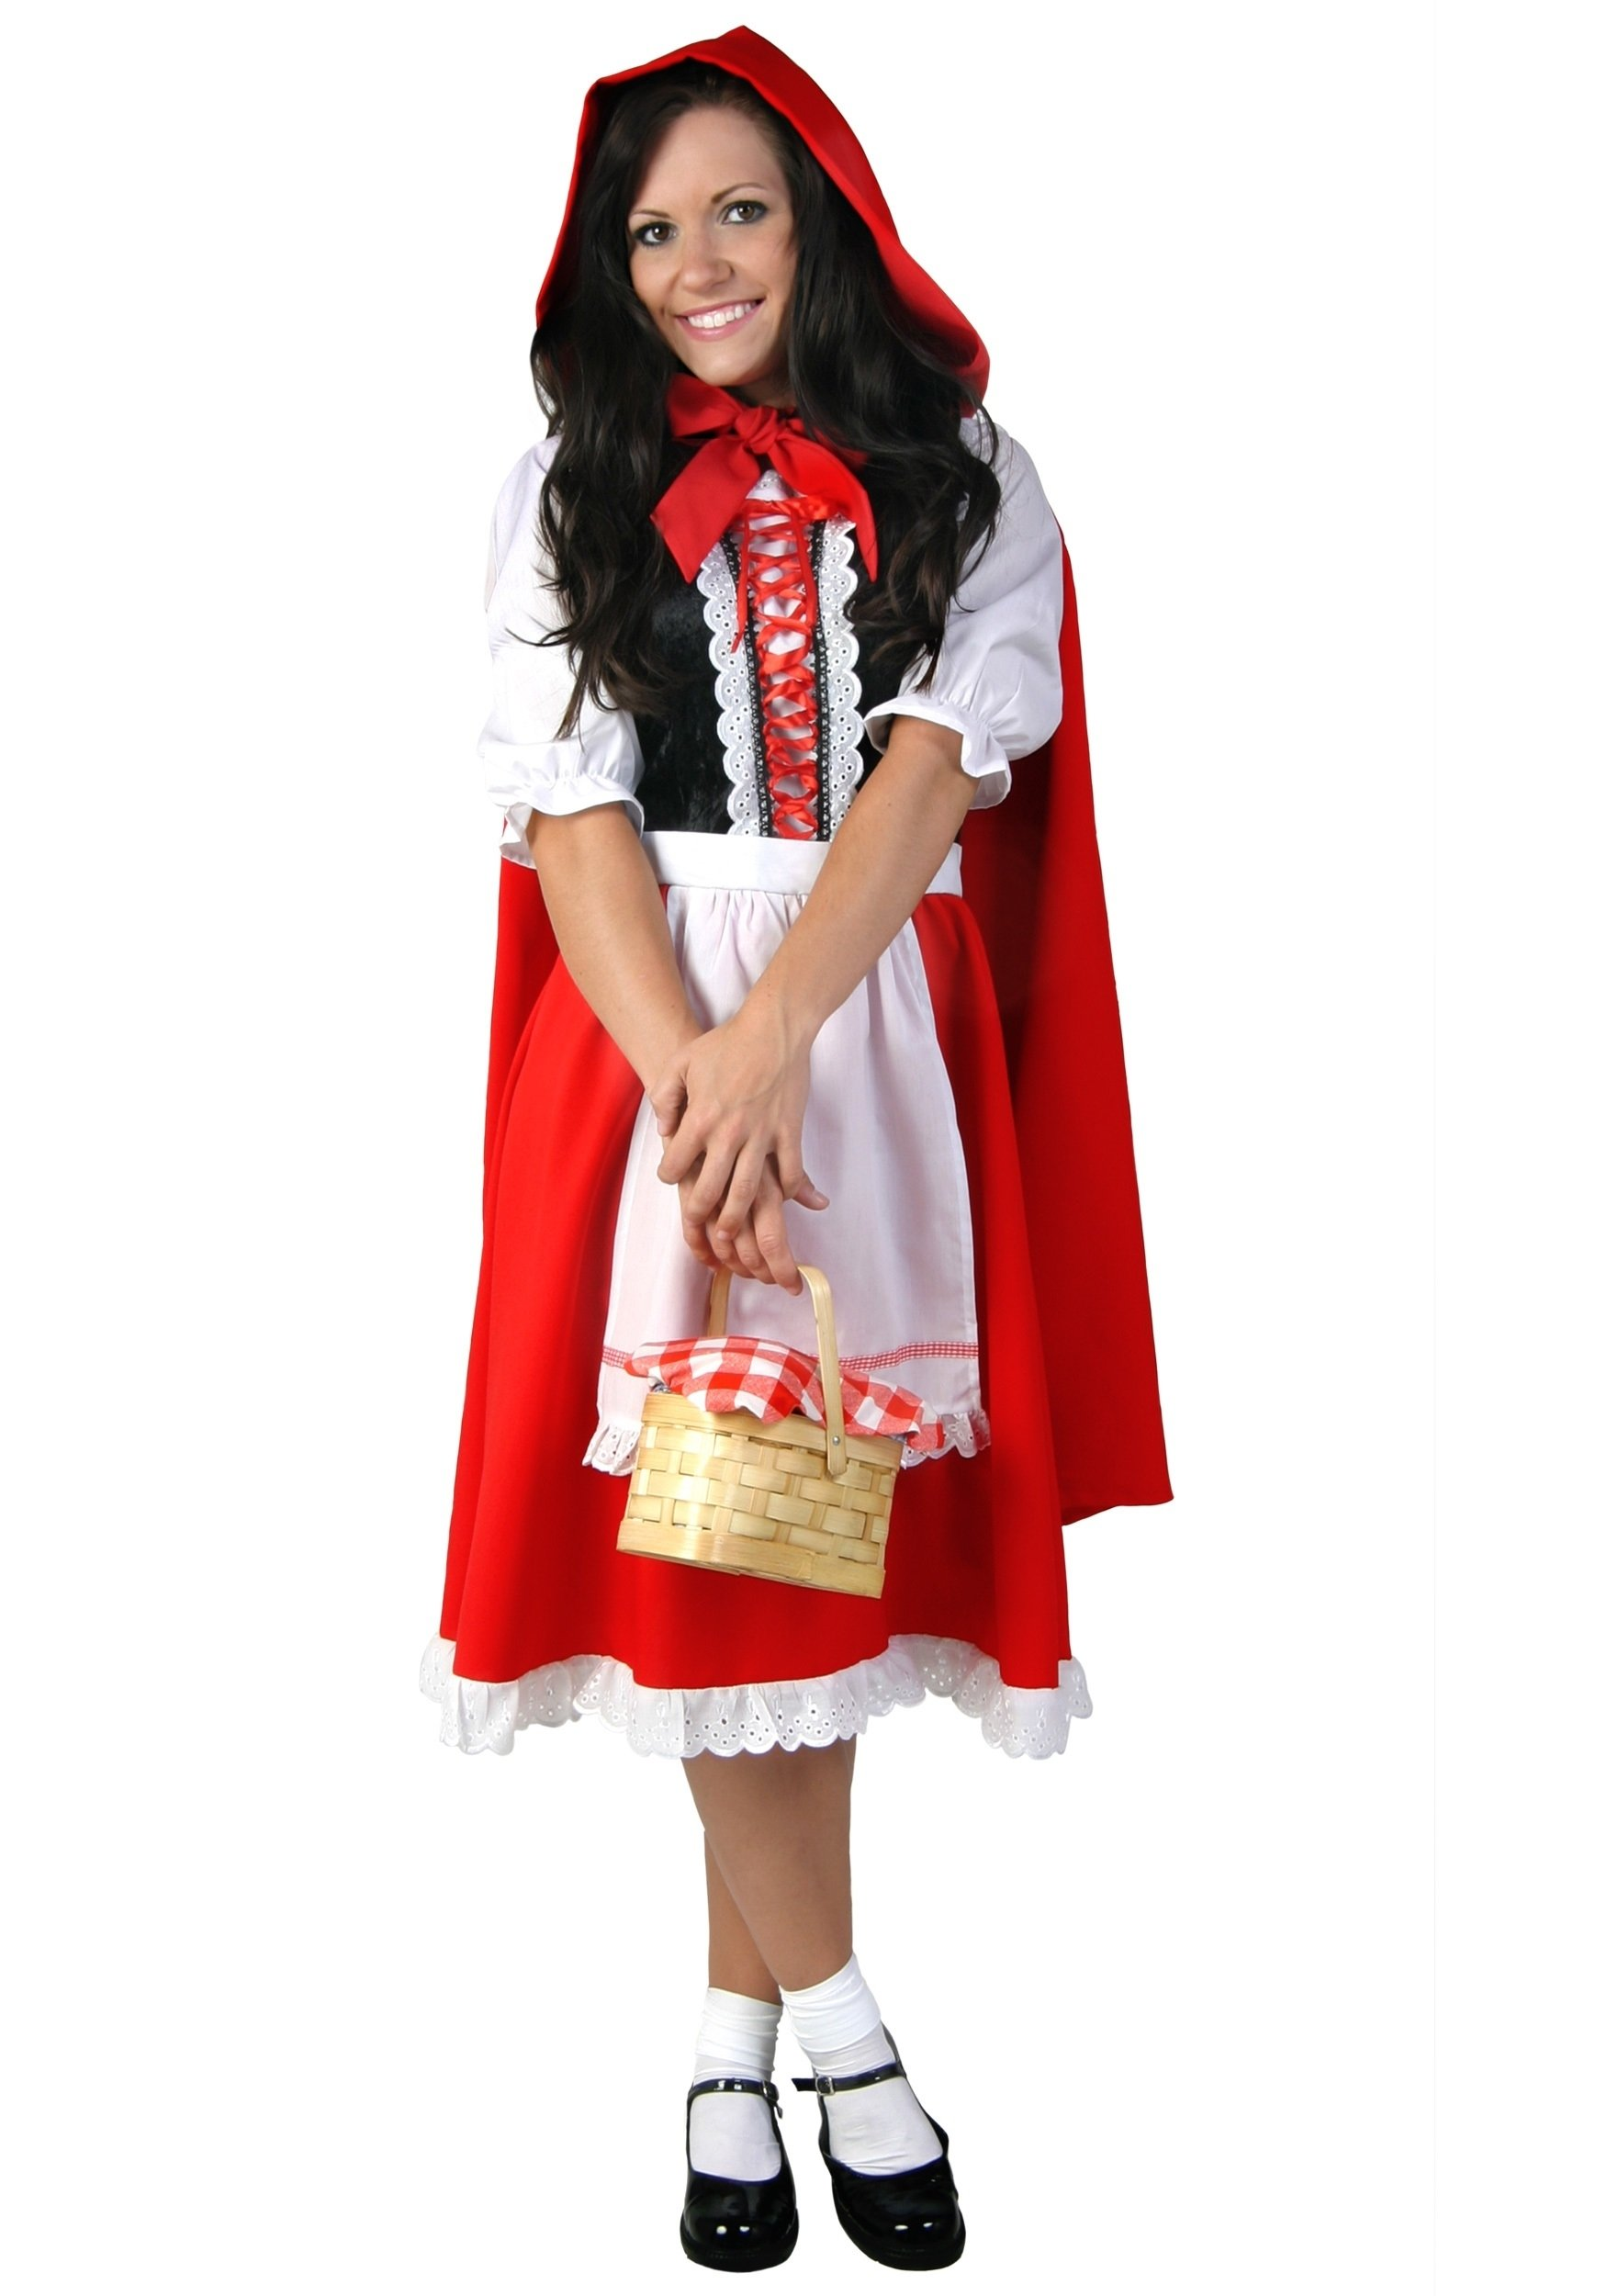 10 Trendy Red Riding Hood Costume Ideas adult little red riding hood costume riding hood costume ideas 2020